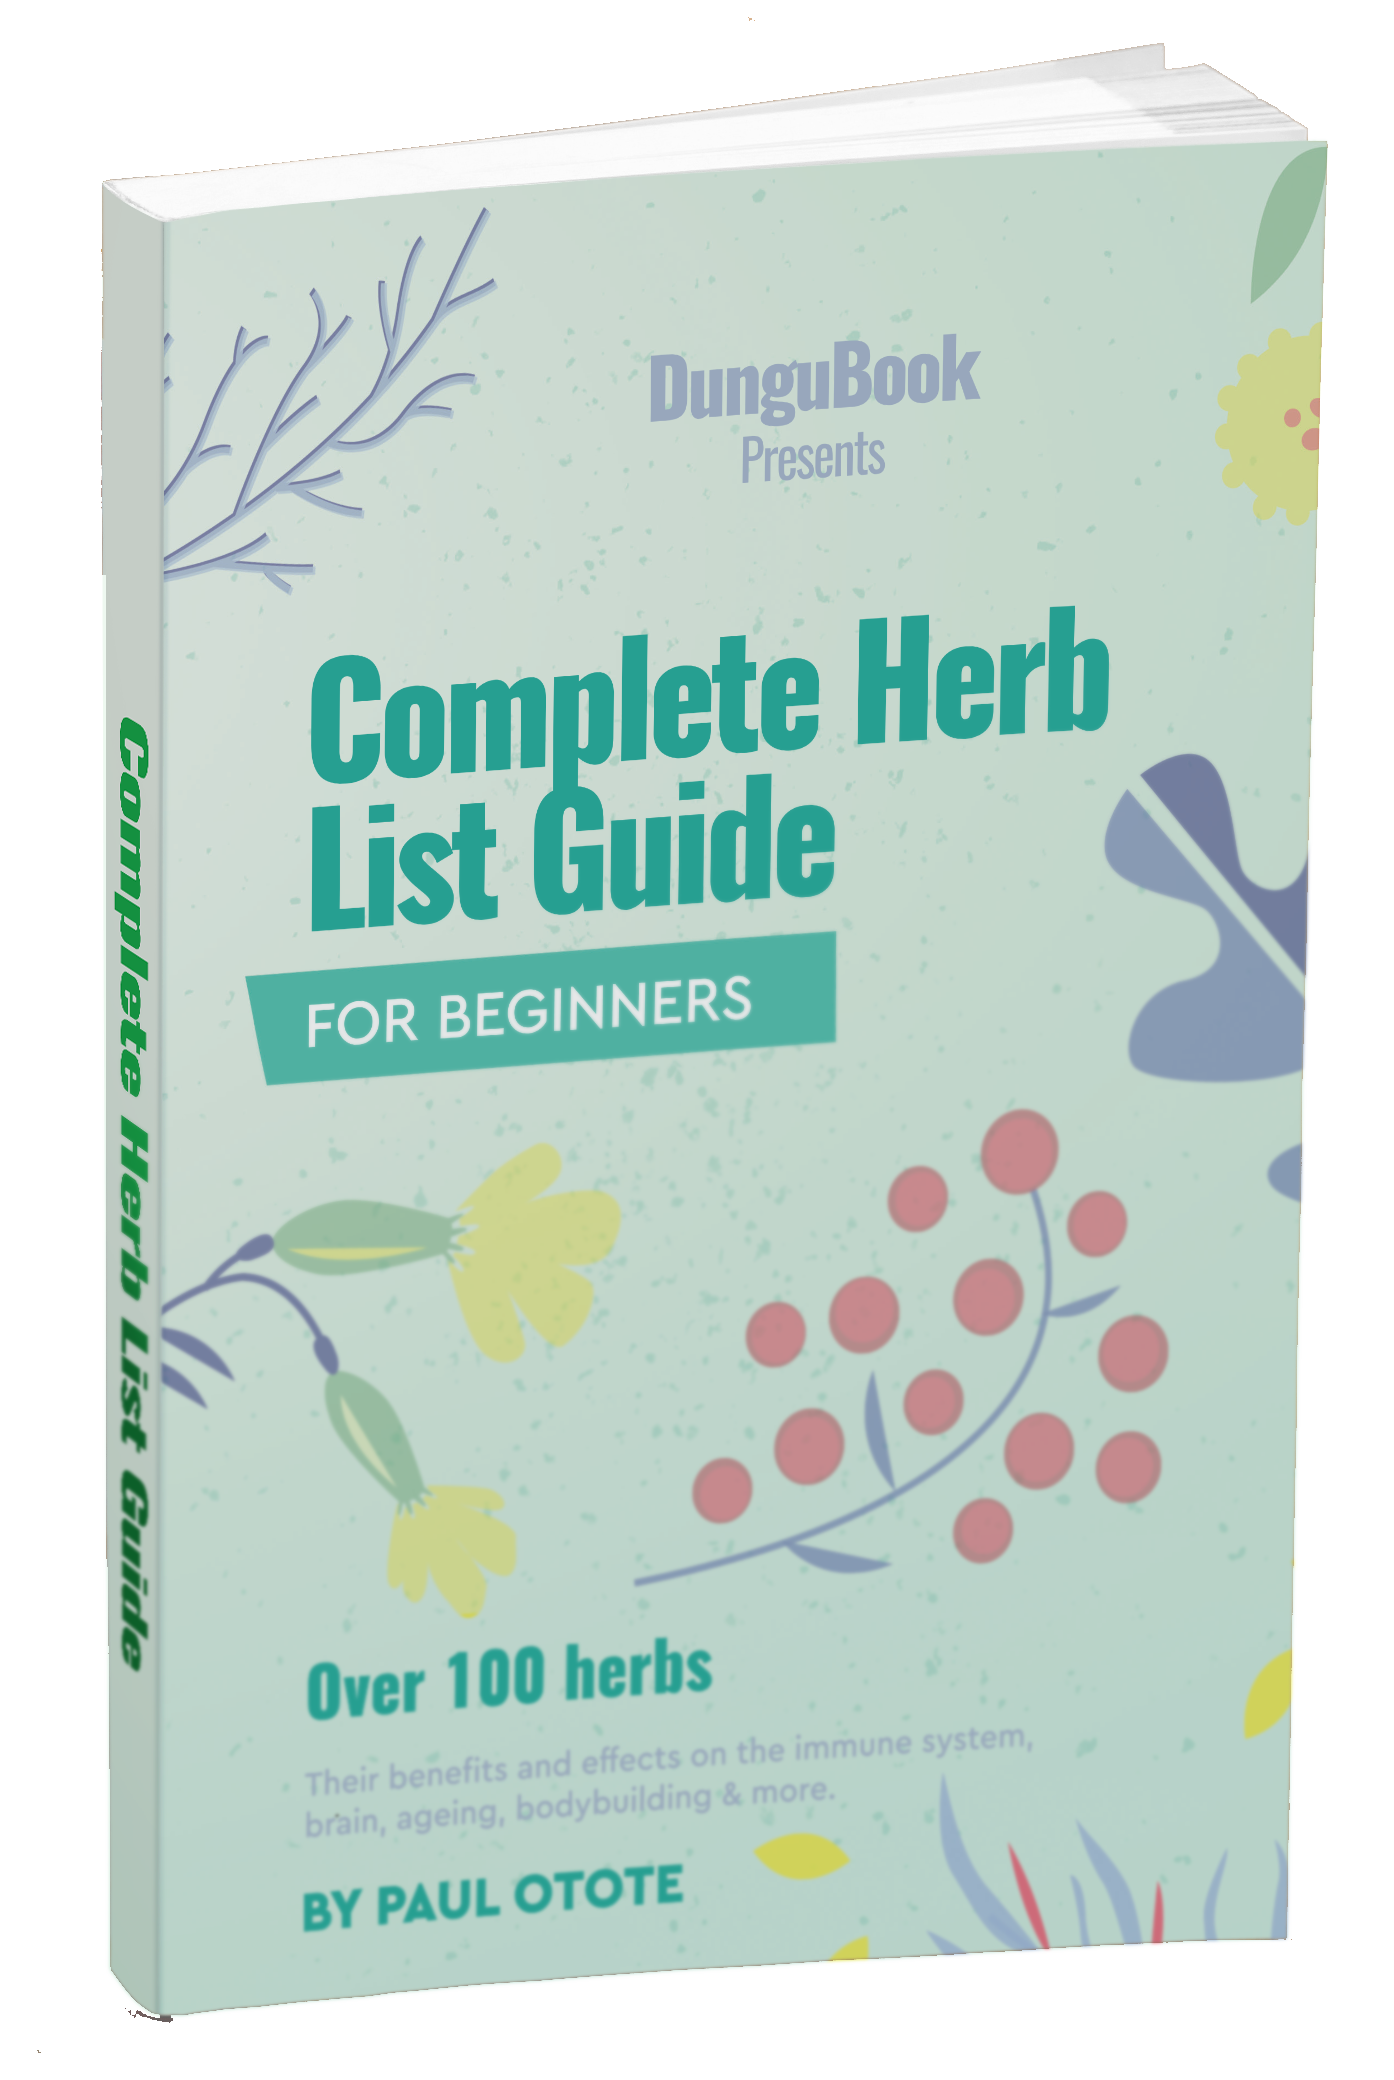 Complete Herb Guide Benefits Hardcopy